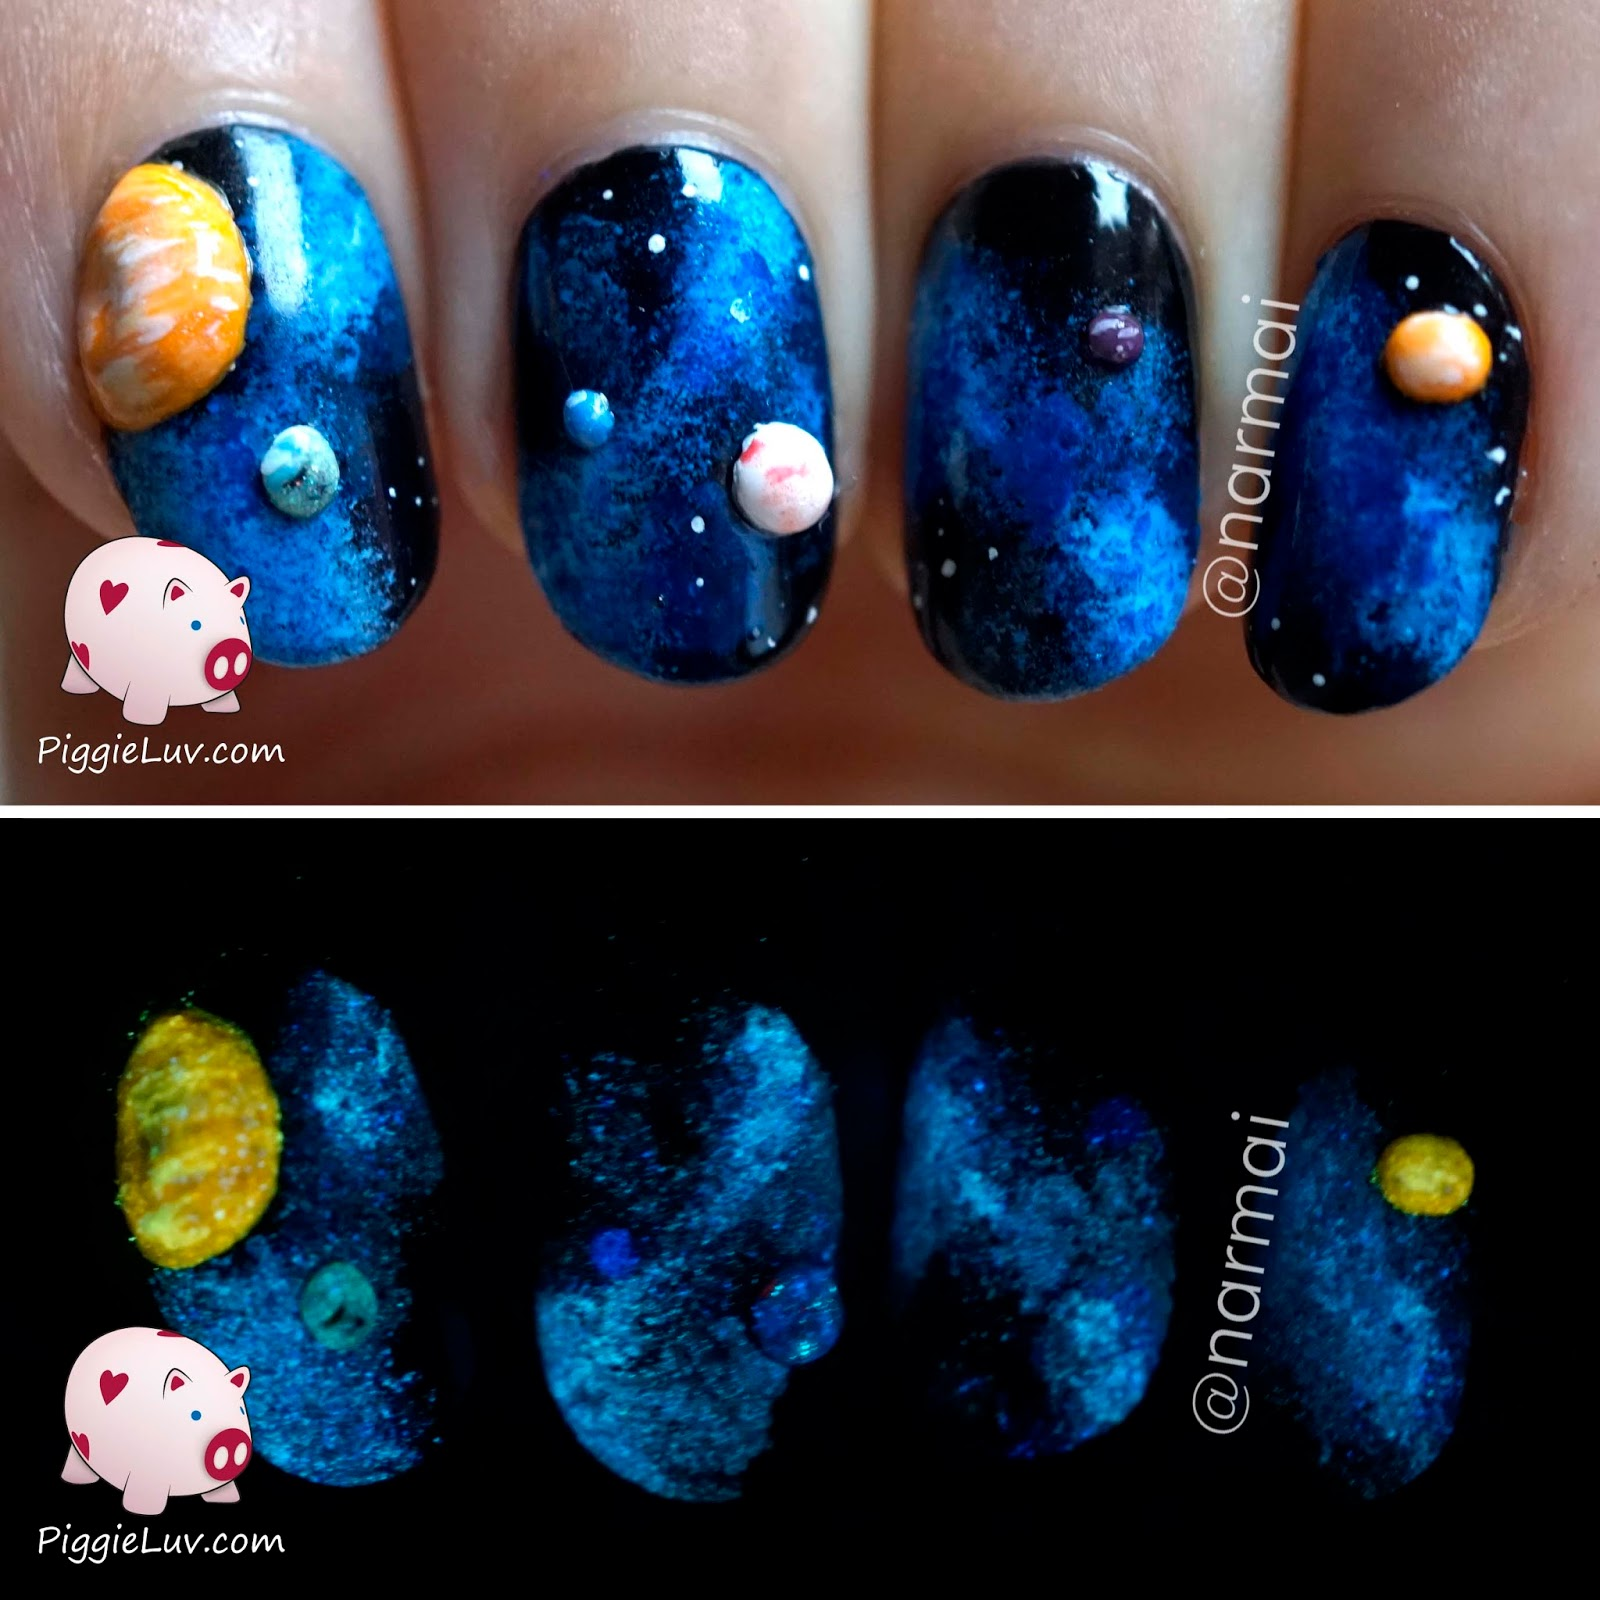 Piggieluv Galaxy Donuts Nail Art: PiggieLuv: 3D Galaxy Nail Art (glow In The Dark